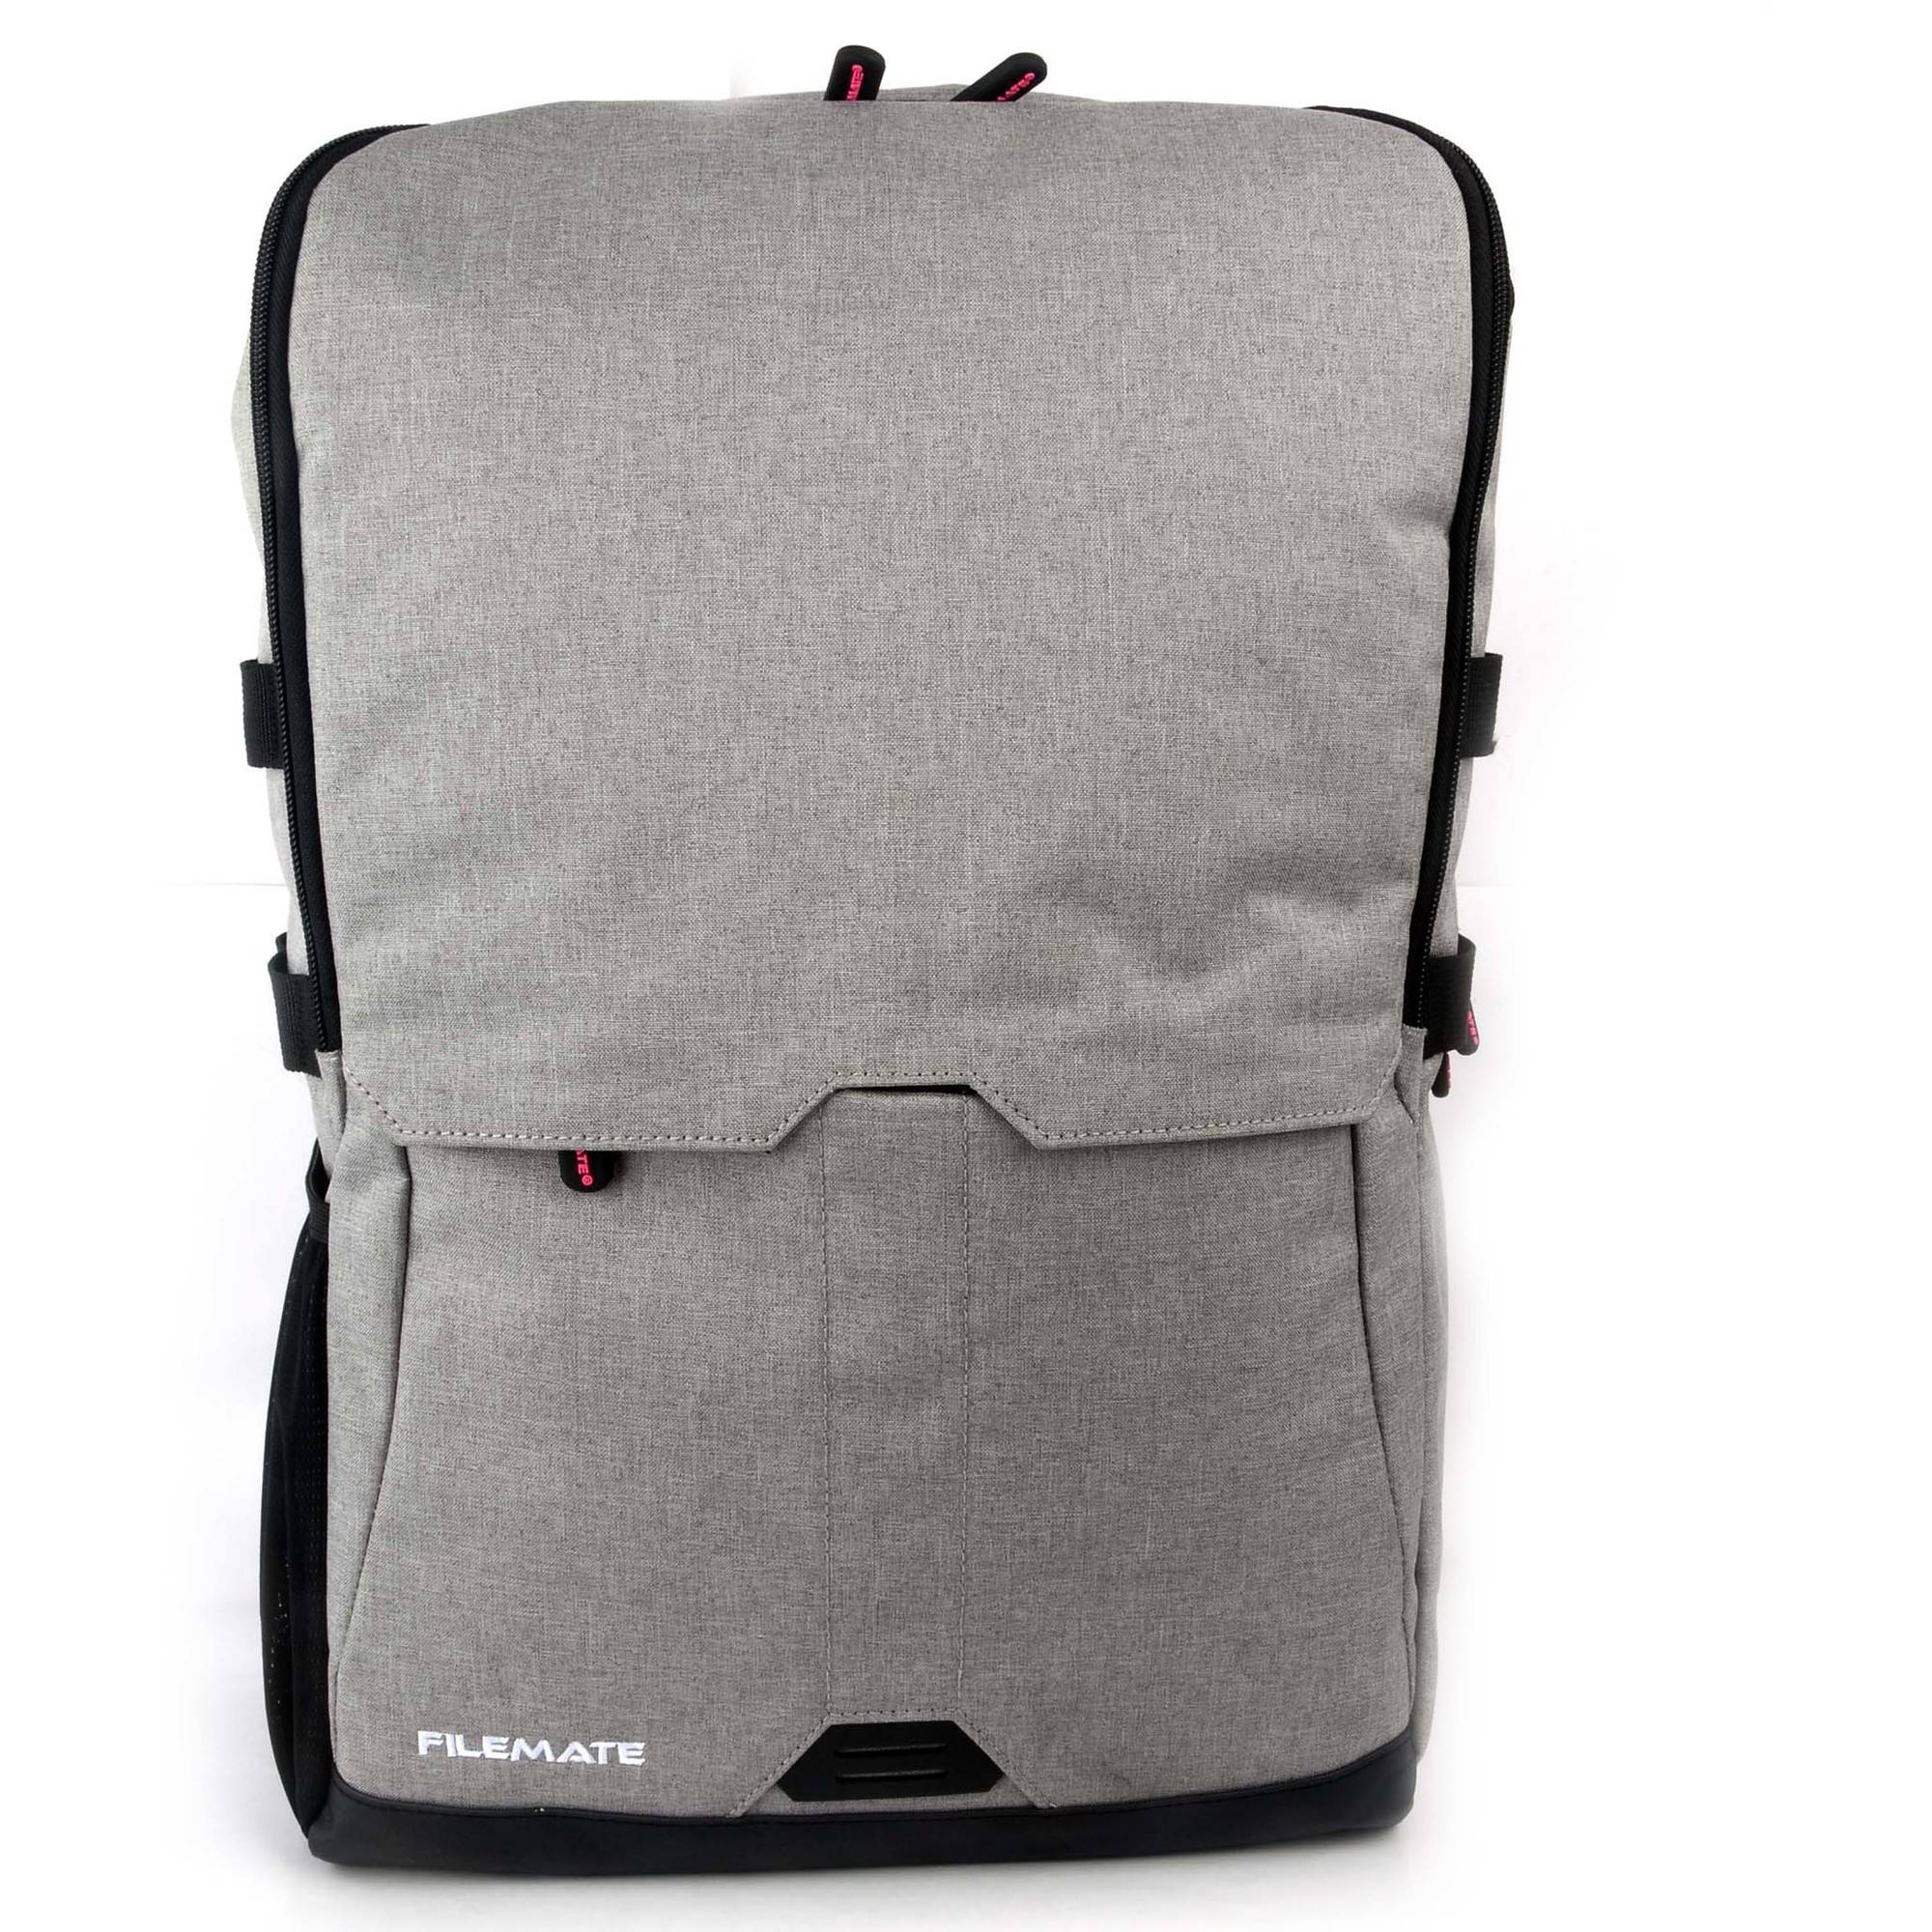 "FileMate Contempo Padded RFID Protected 15.6"" Laptop Computer BackPack with 2 Acessory Pockets"